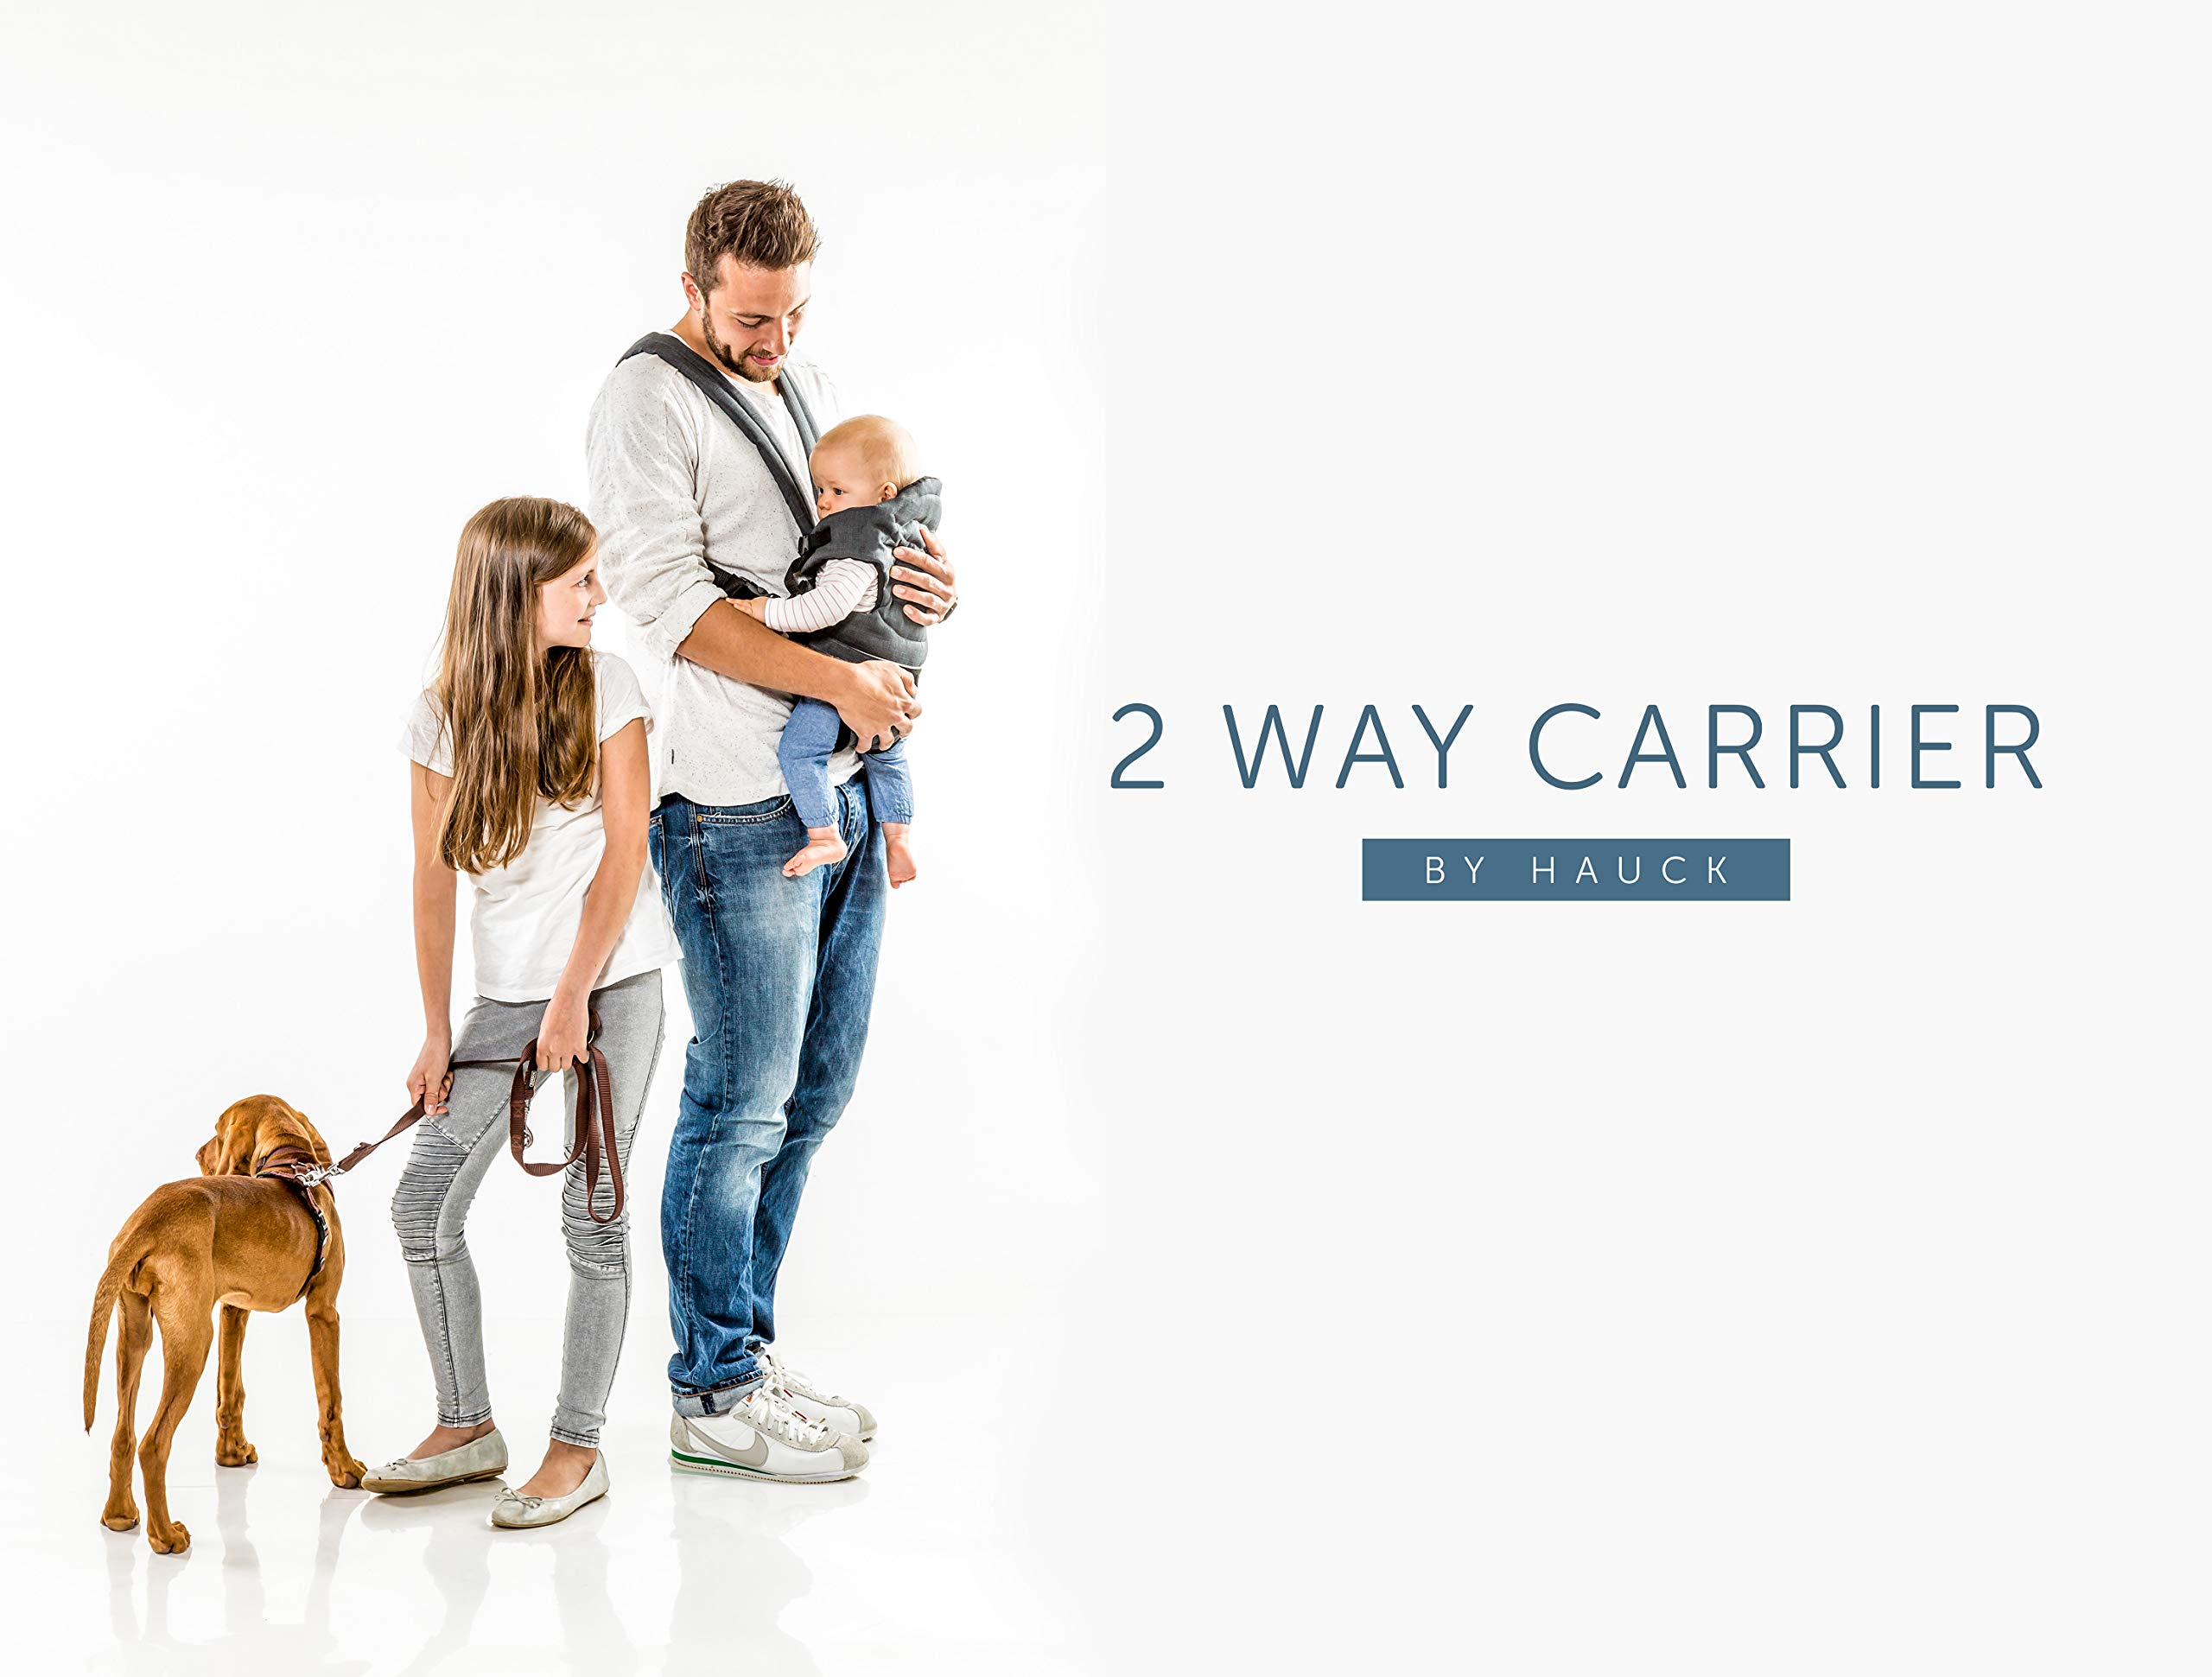 Hauck 2 Way Carrier, Ergonomic Baby Carrier Newborn to Toddler from Birth up to 12 kg, Softly Padded, Two Carrying Possibilities, High Level of Carrying Comfort, Melange Charcoal Hauck 2 carrying possibilities on the front Reinforced head and back area Safe and ergonomic baby carrier 10